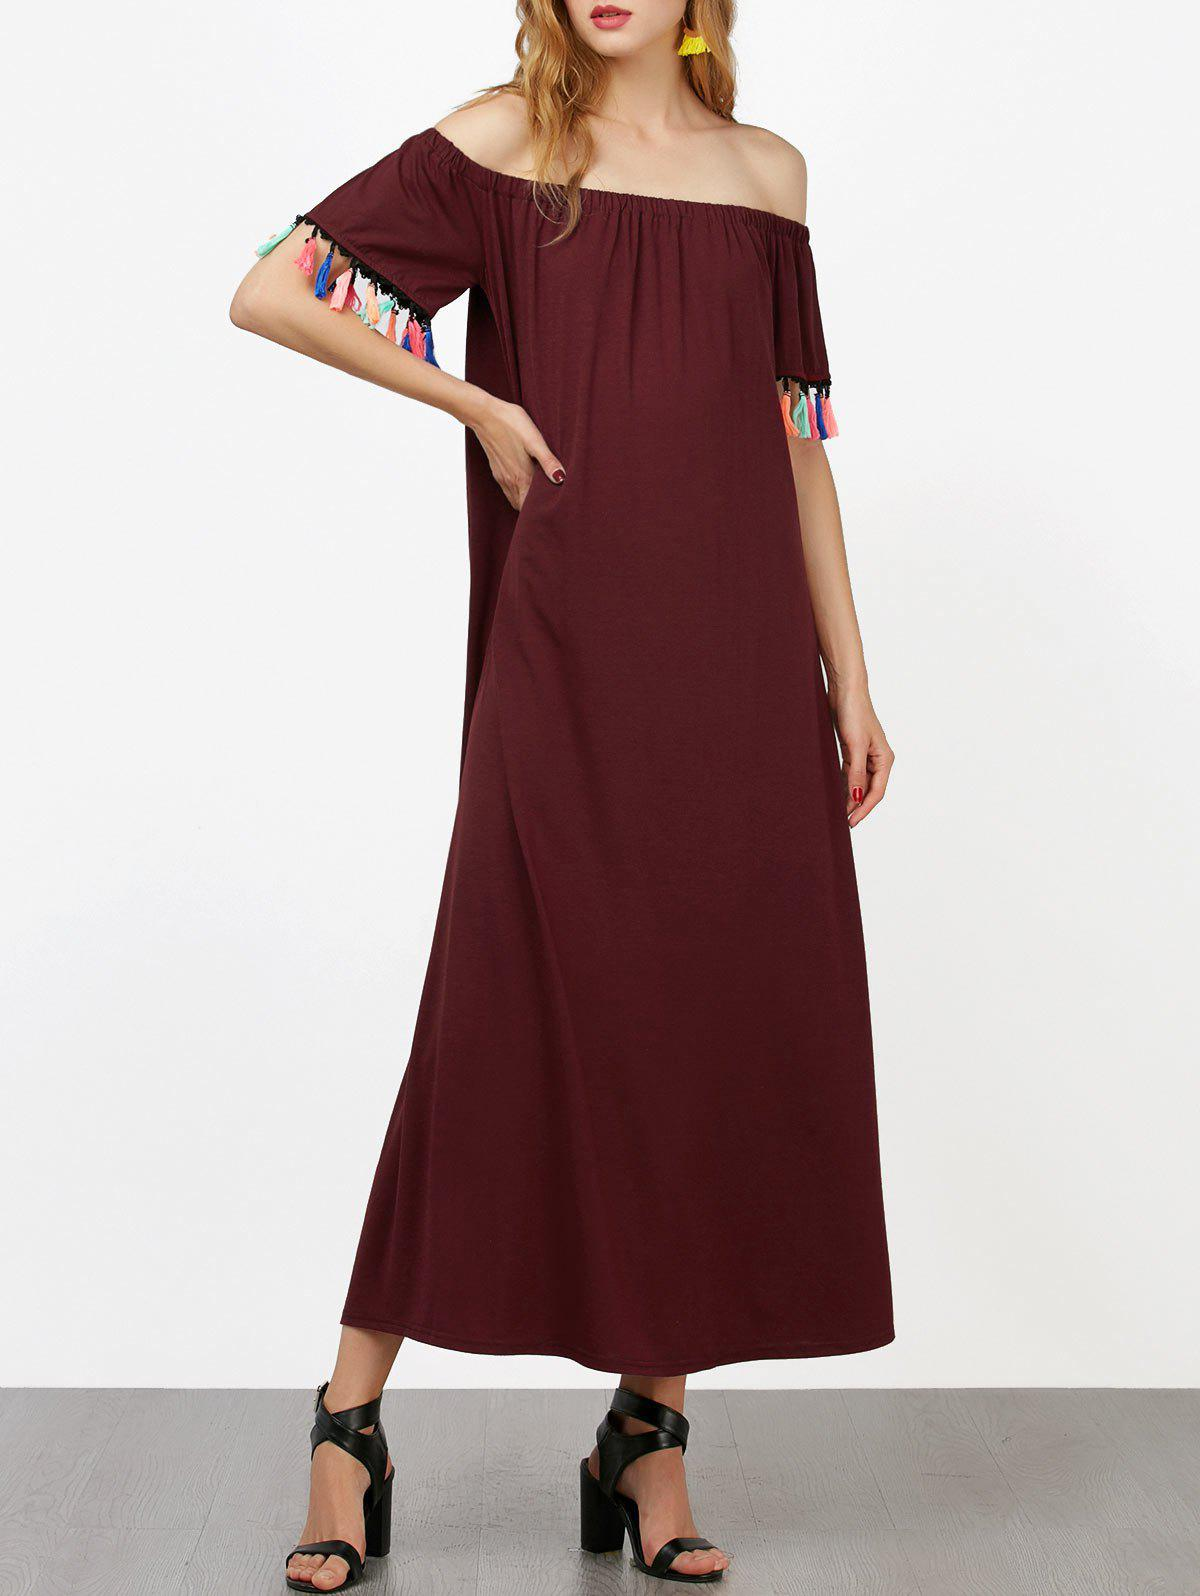 Off The Shoulder Short Sleeve Maxi Dress - WINE RED S